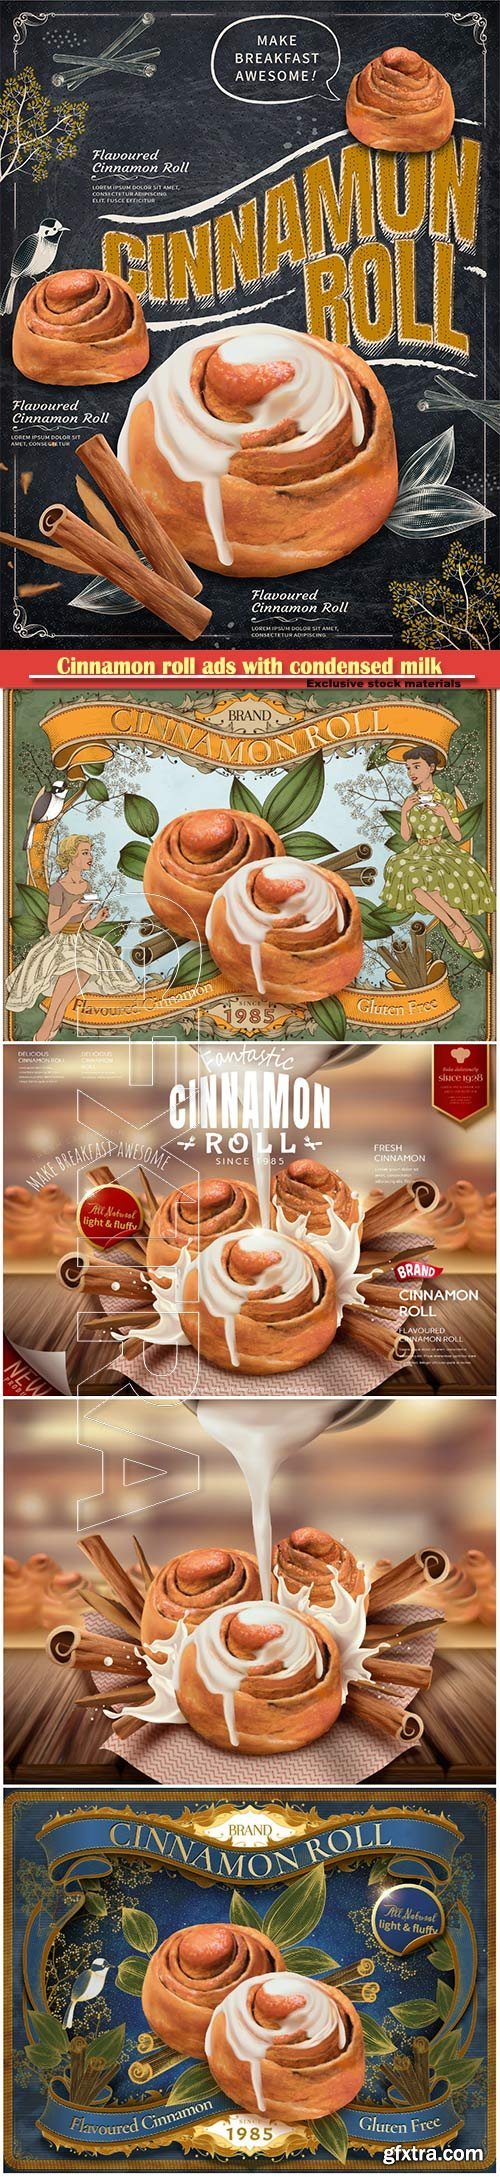 Cinnamon roll ads with condensed milk in 3d vector illustration